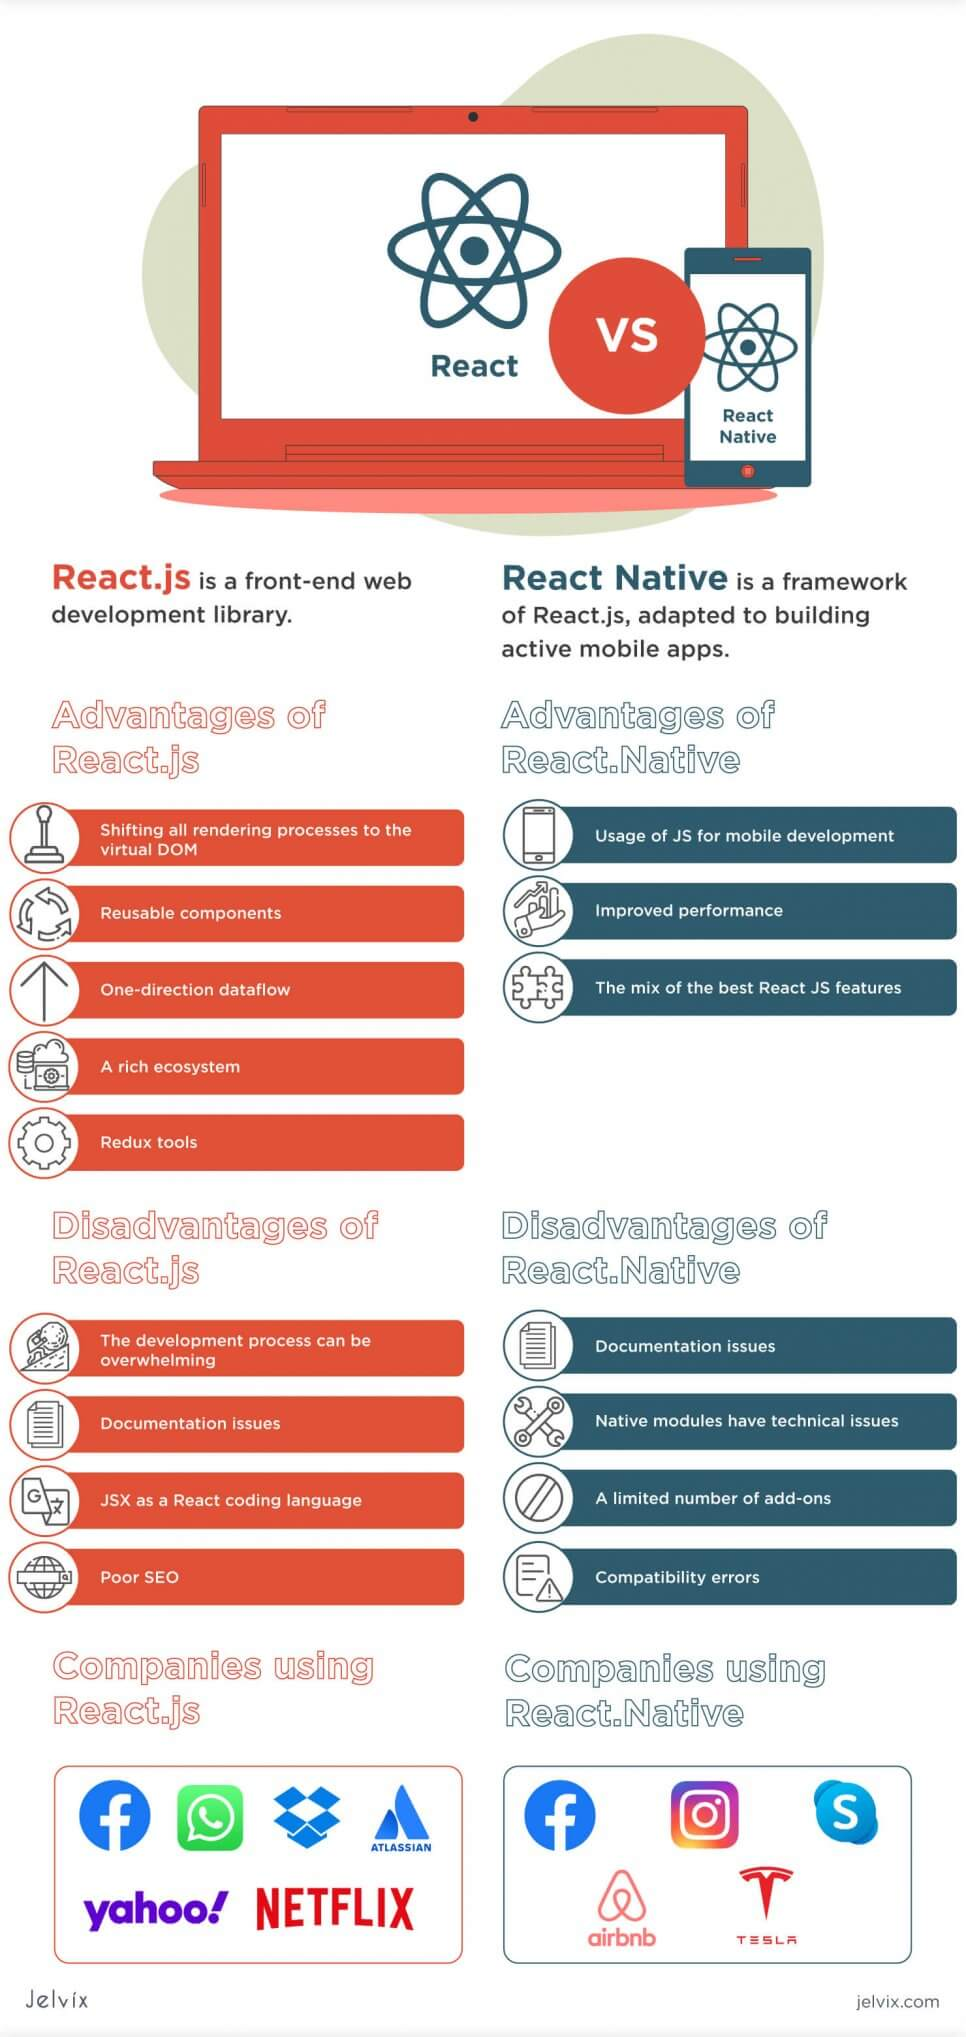 react native vs react